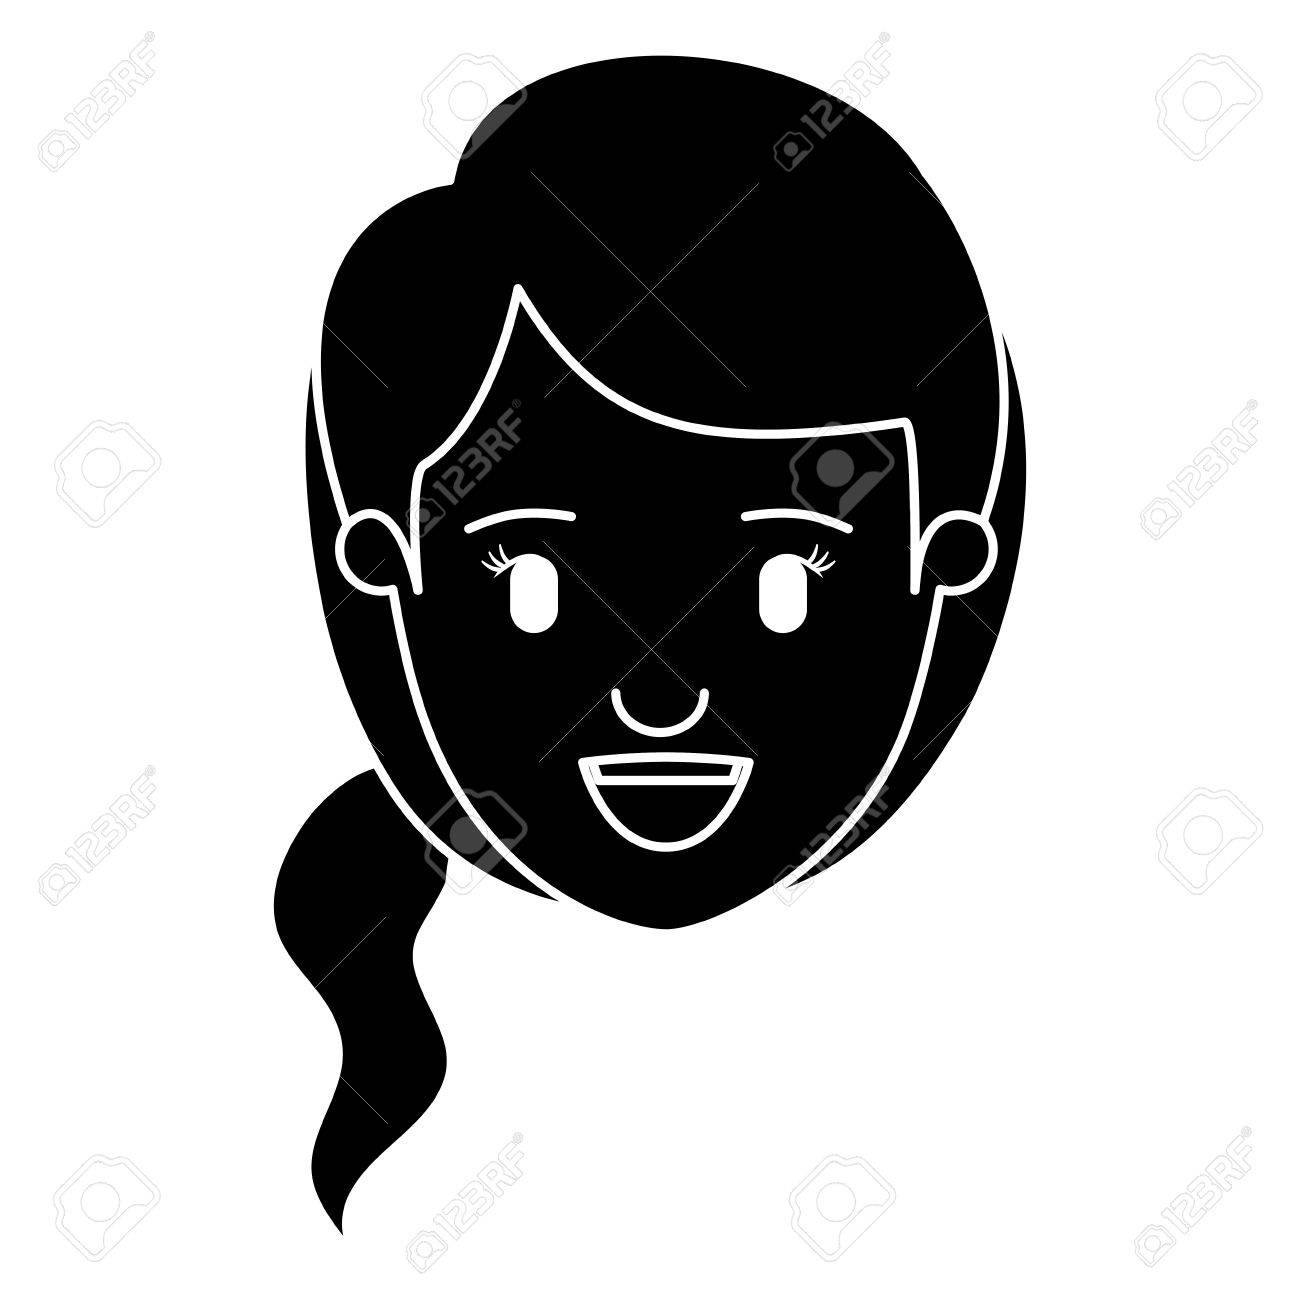 silhouette black front view face woman with side ponytail hair vector illustration stock vector 77938883